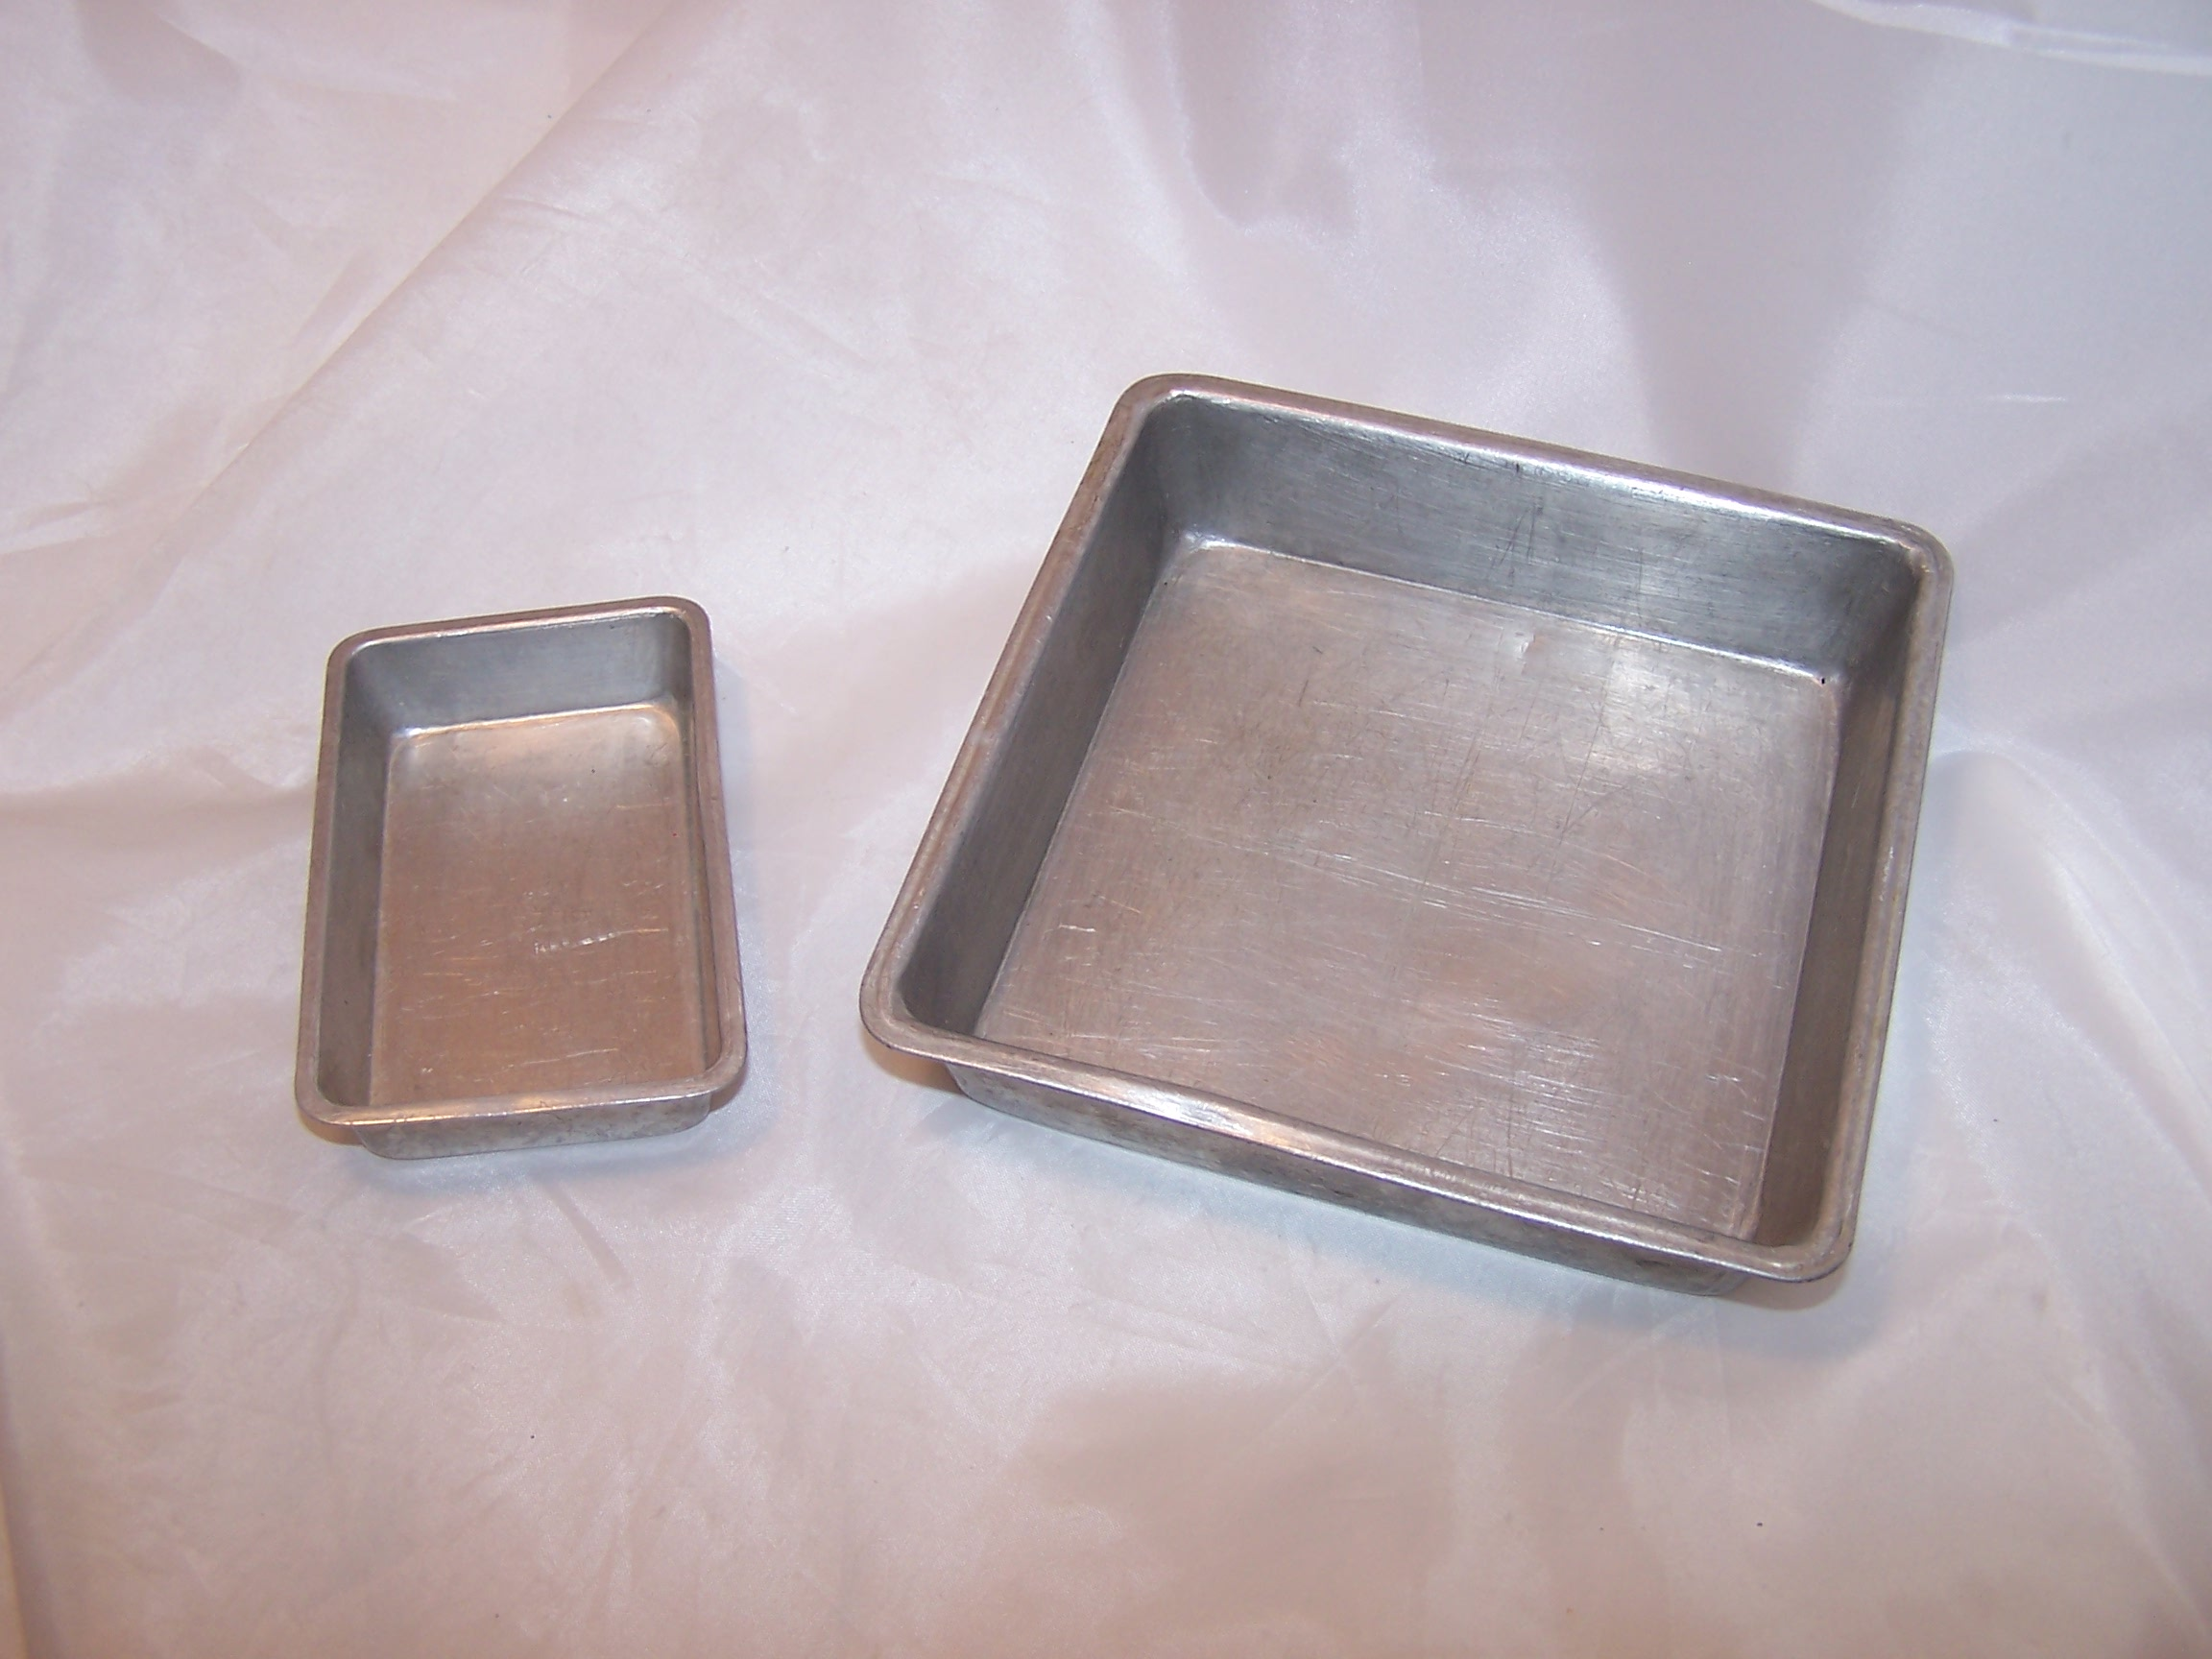 Toy Baking Pans, Childs Cookware, Aluminum